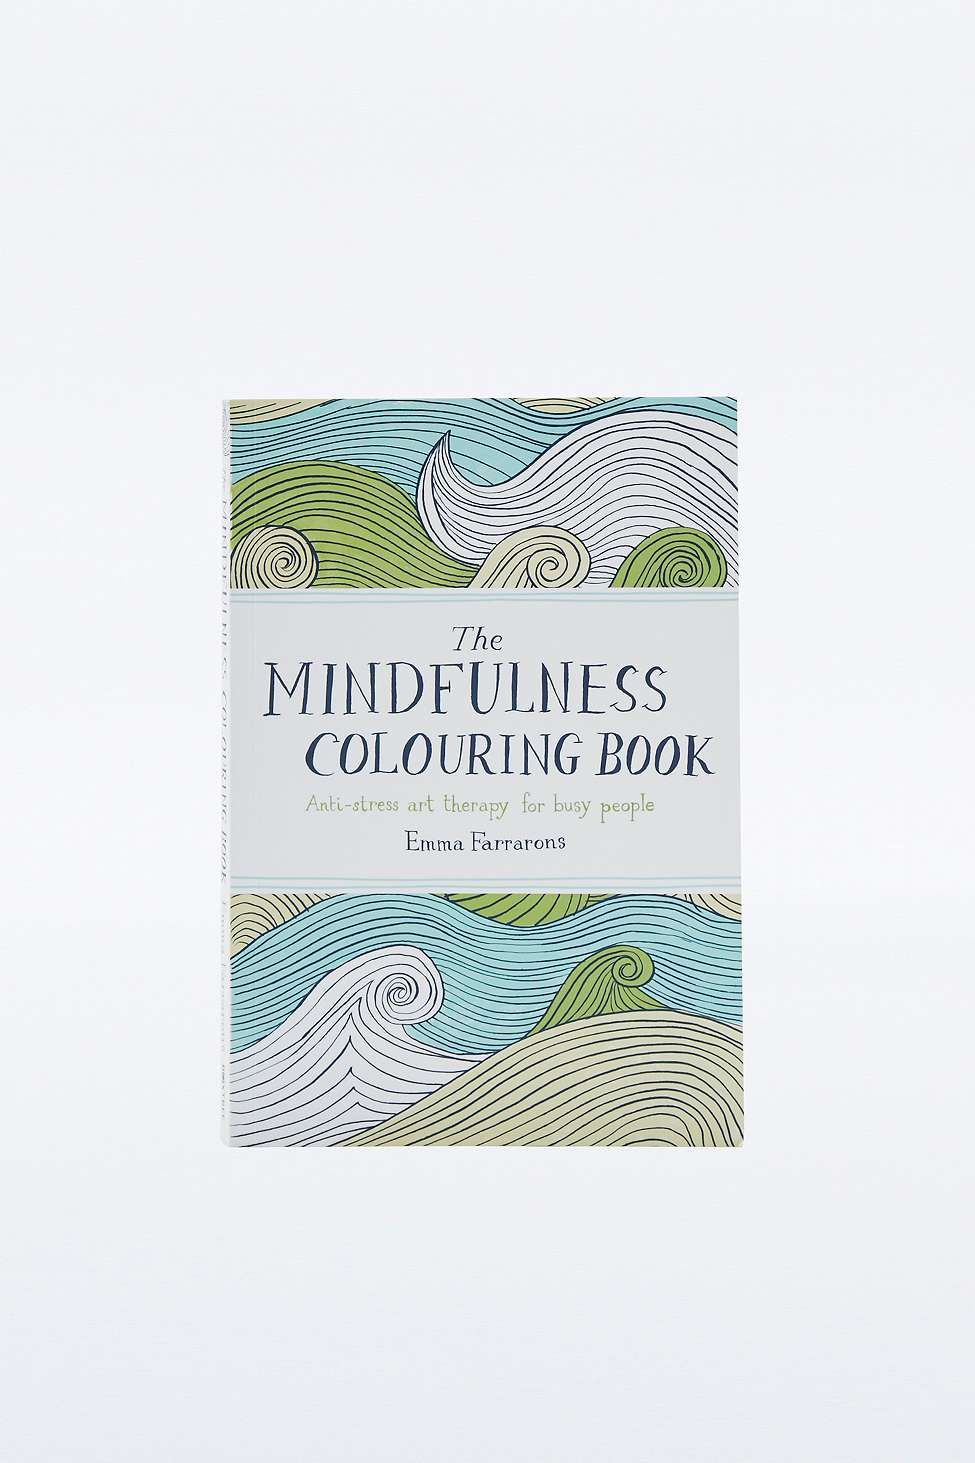 The Mindfulness Colouring Book Anti Stress Art Therapy For Busy People Best Of Food And Travel Head To Theculturetrip